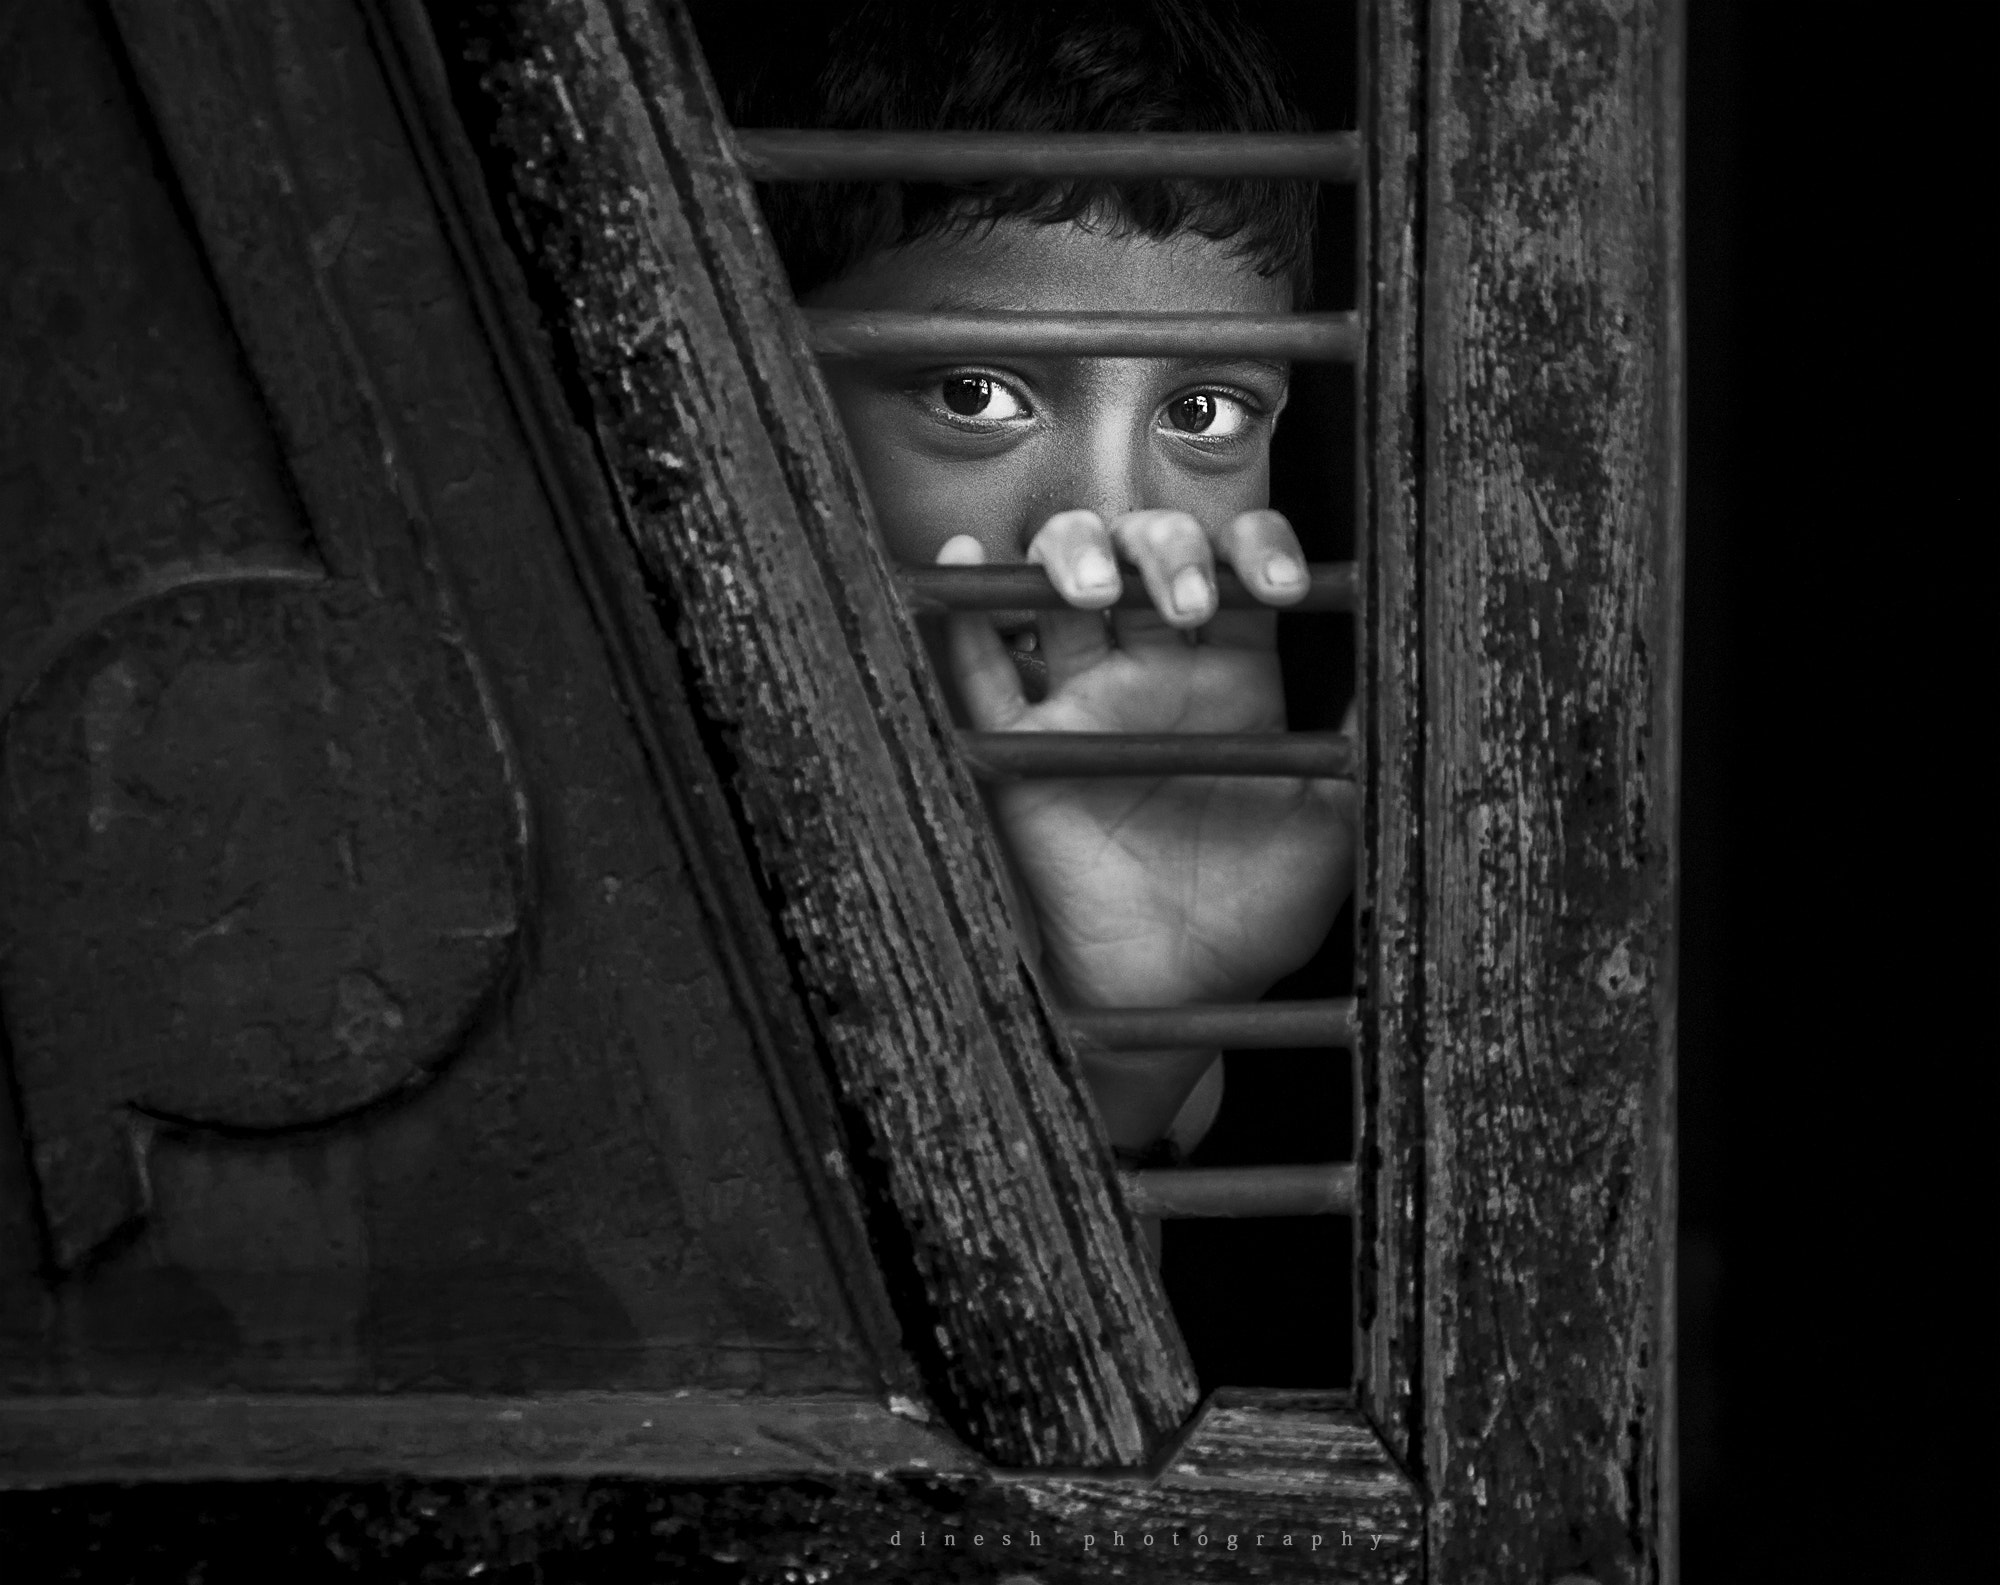 Photograph Waiting in the dark by dinesh babu on 500px